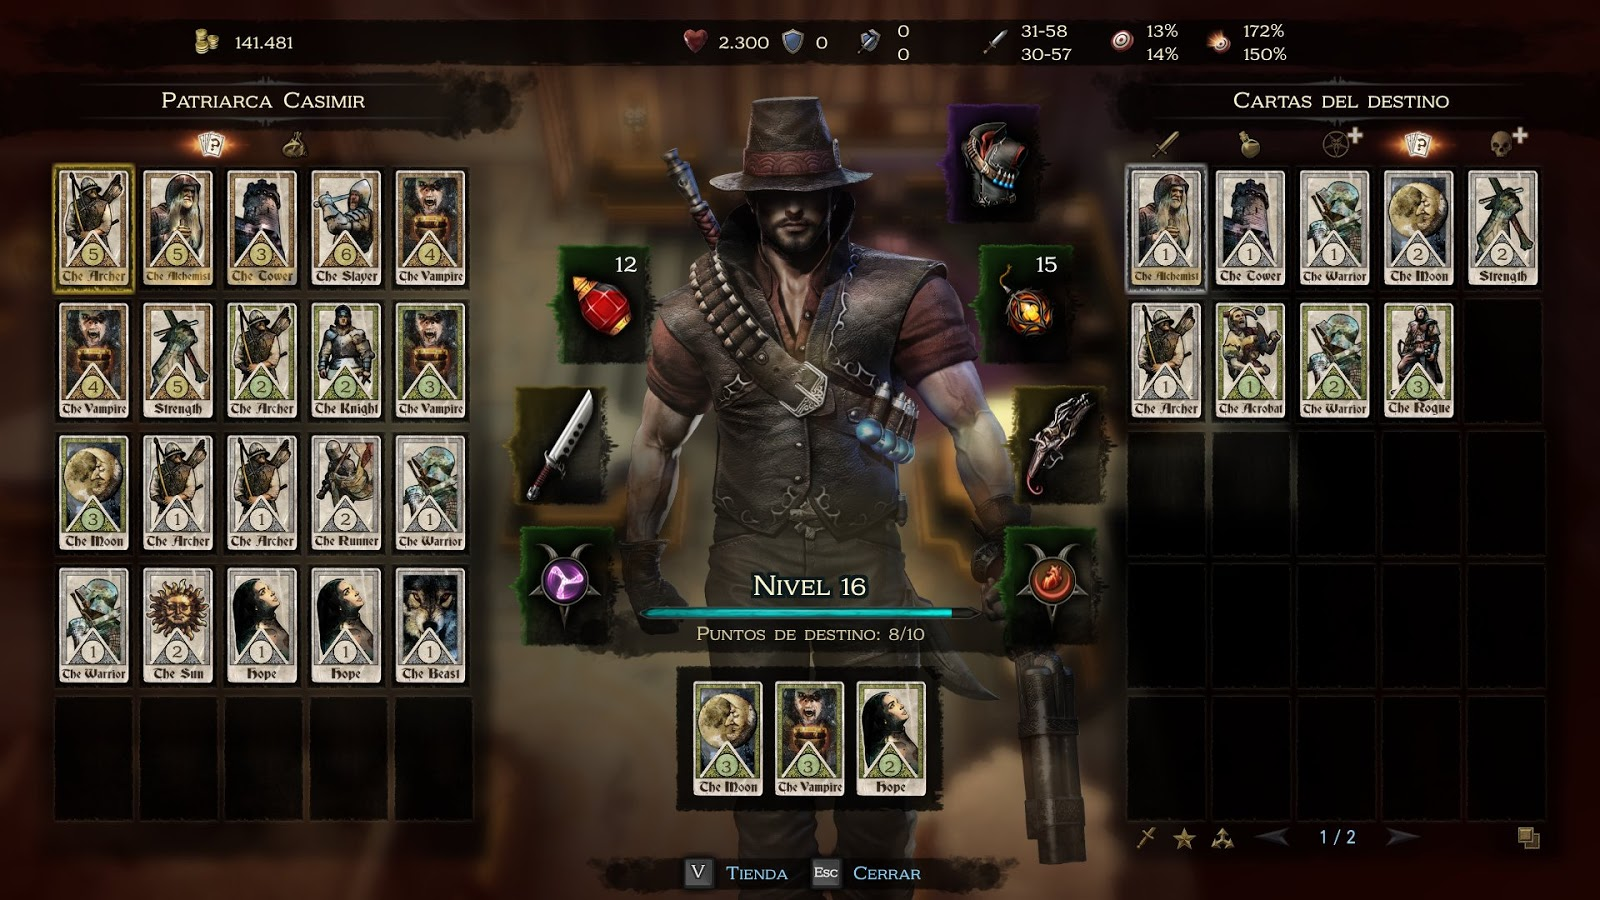 Bristolian Gamer: Victor Vran Review - Something for Diablo